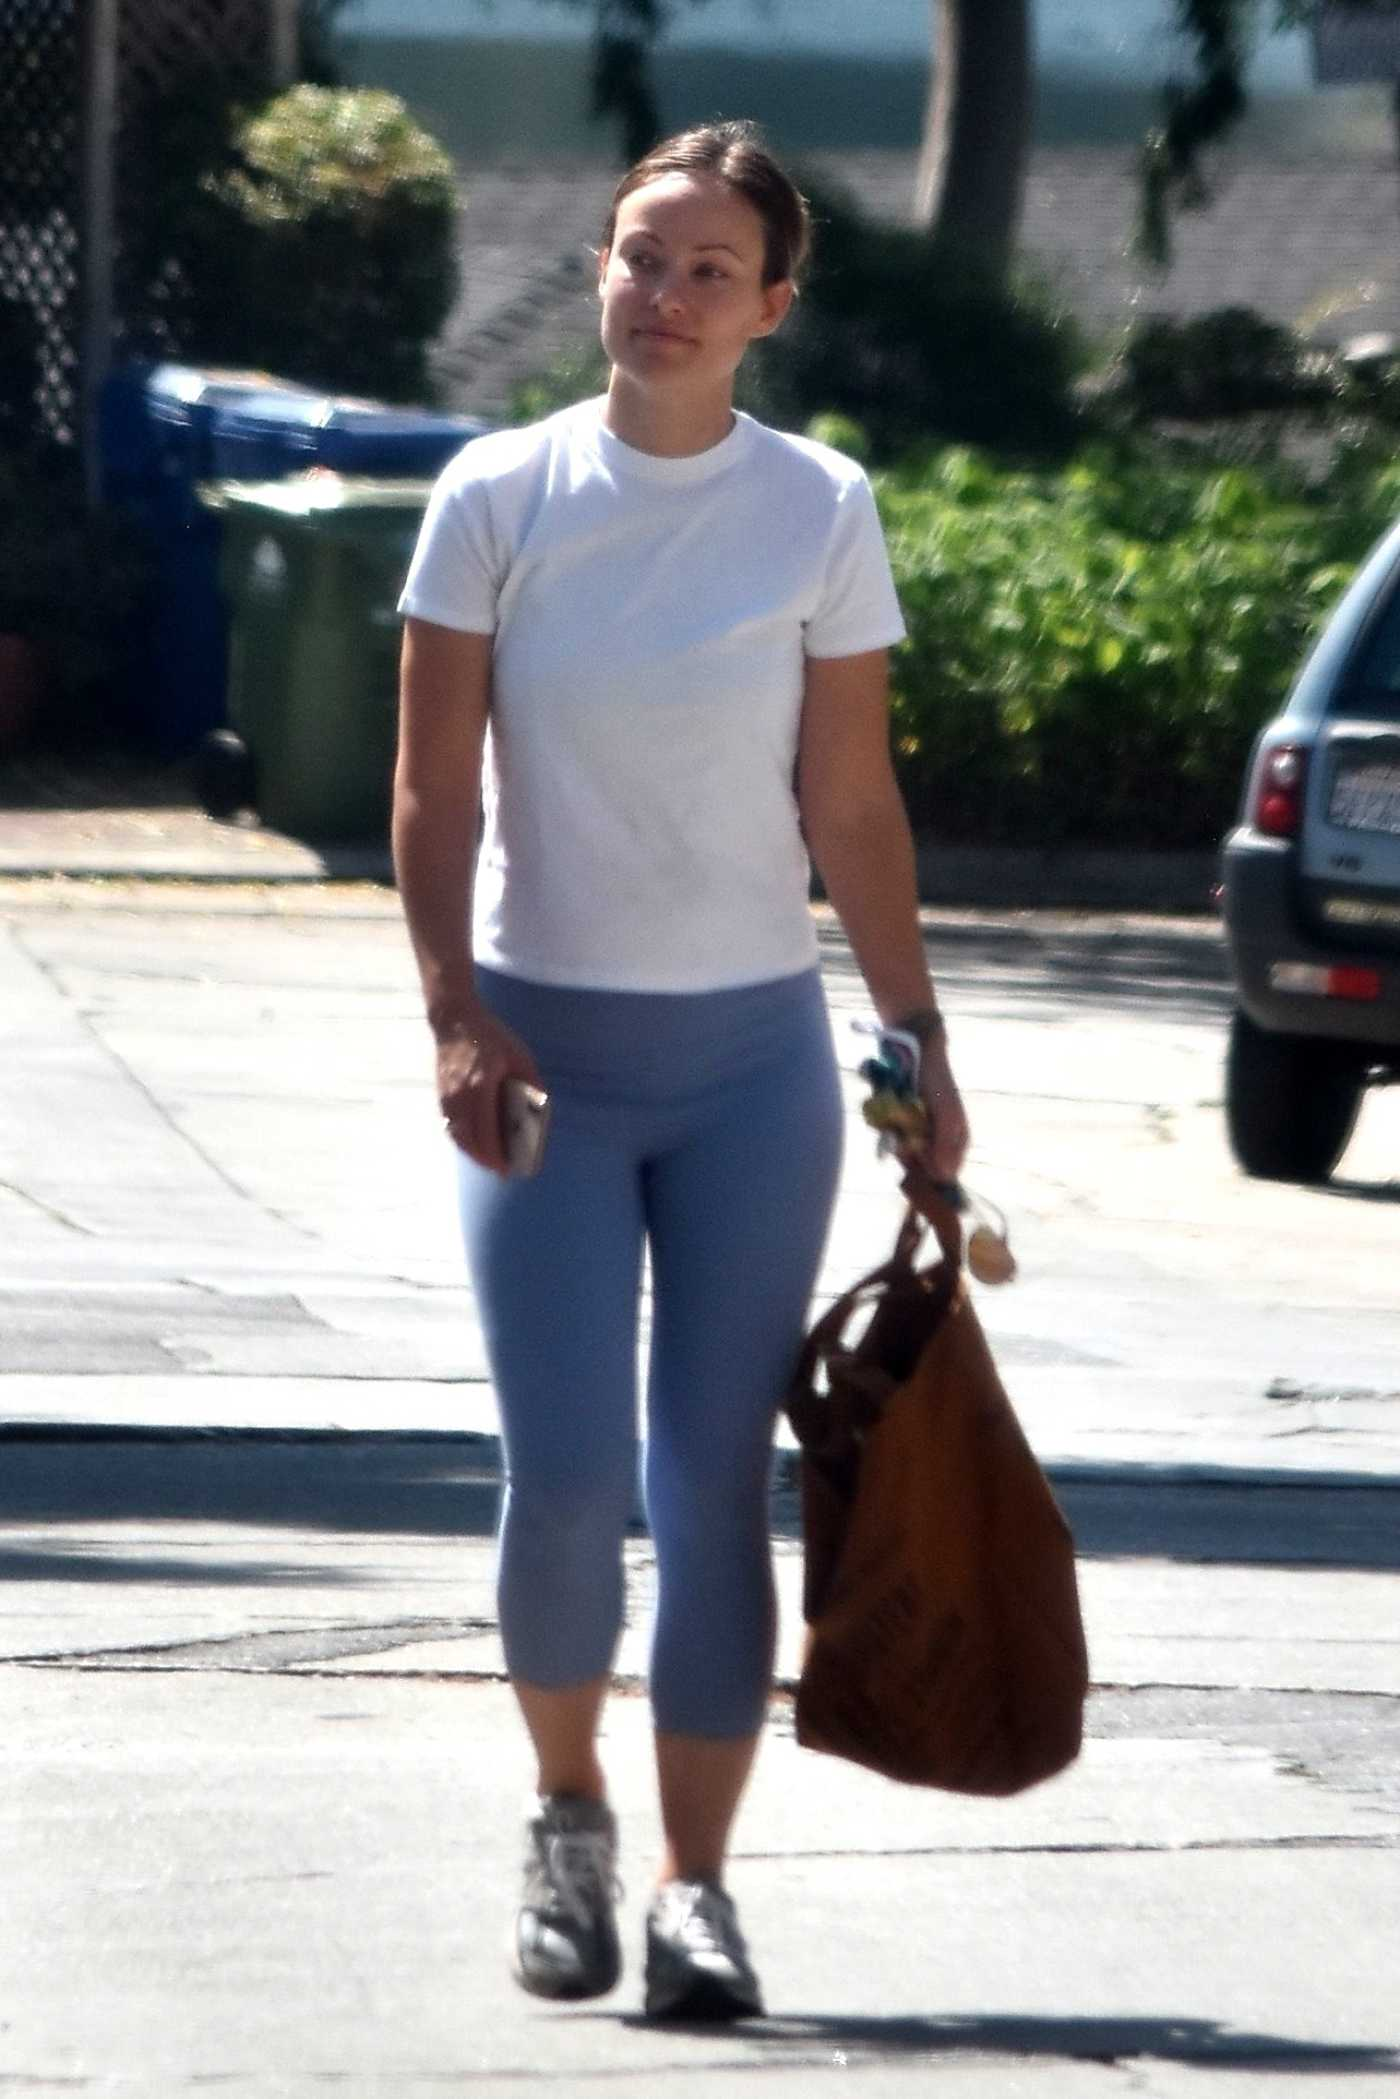 Olivia Wilde in a White Tee Was Seen Out in Silver Lake 06/30/2020